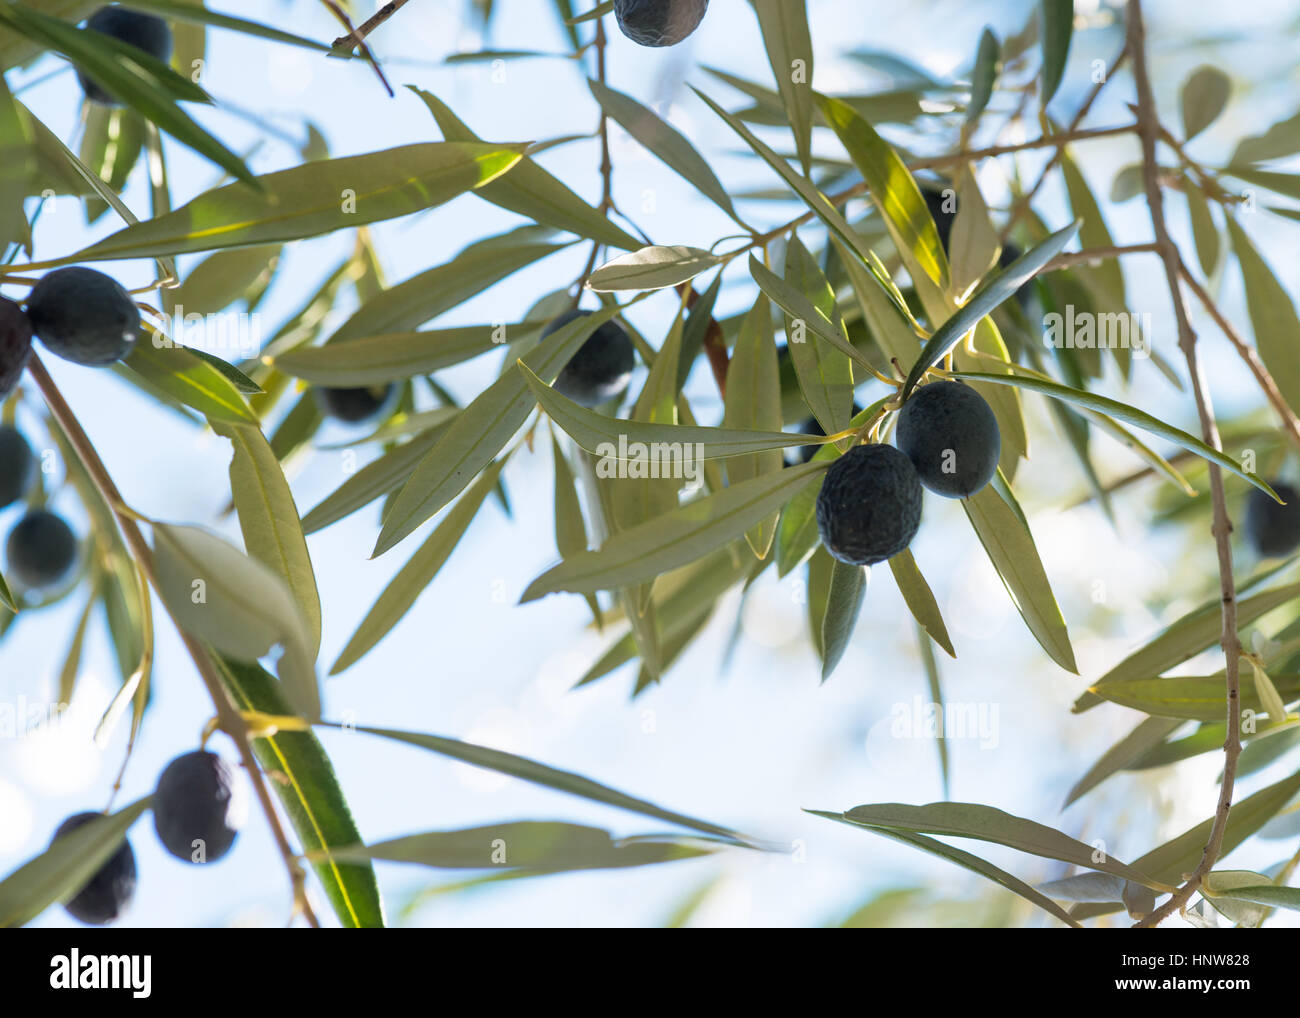 Ripe black olives hanging on a trees in southen spain shot for below with a blue sky above in the background. - Stock Image